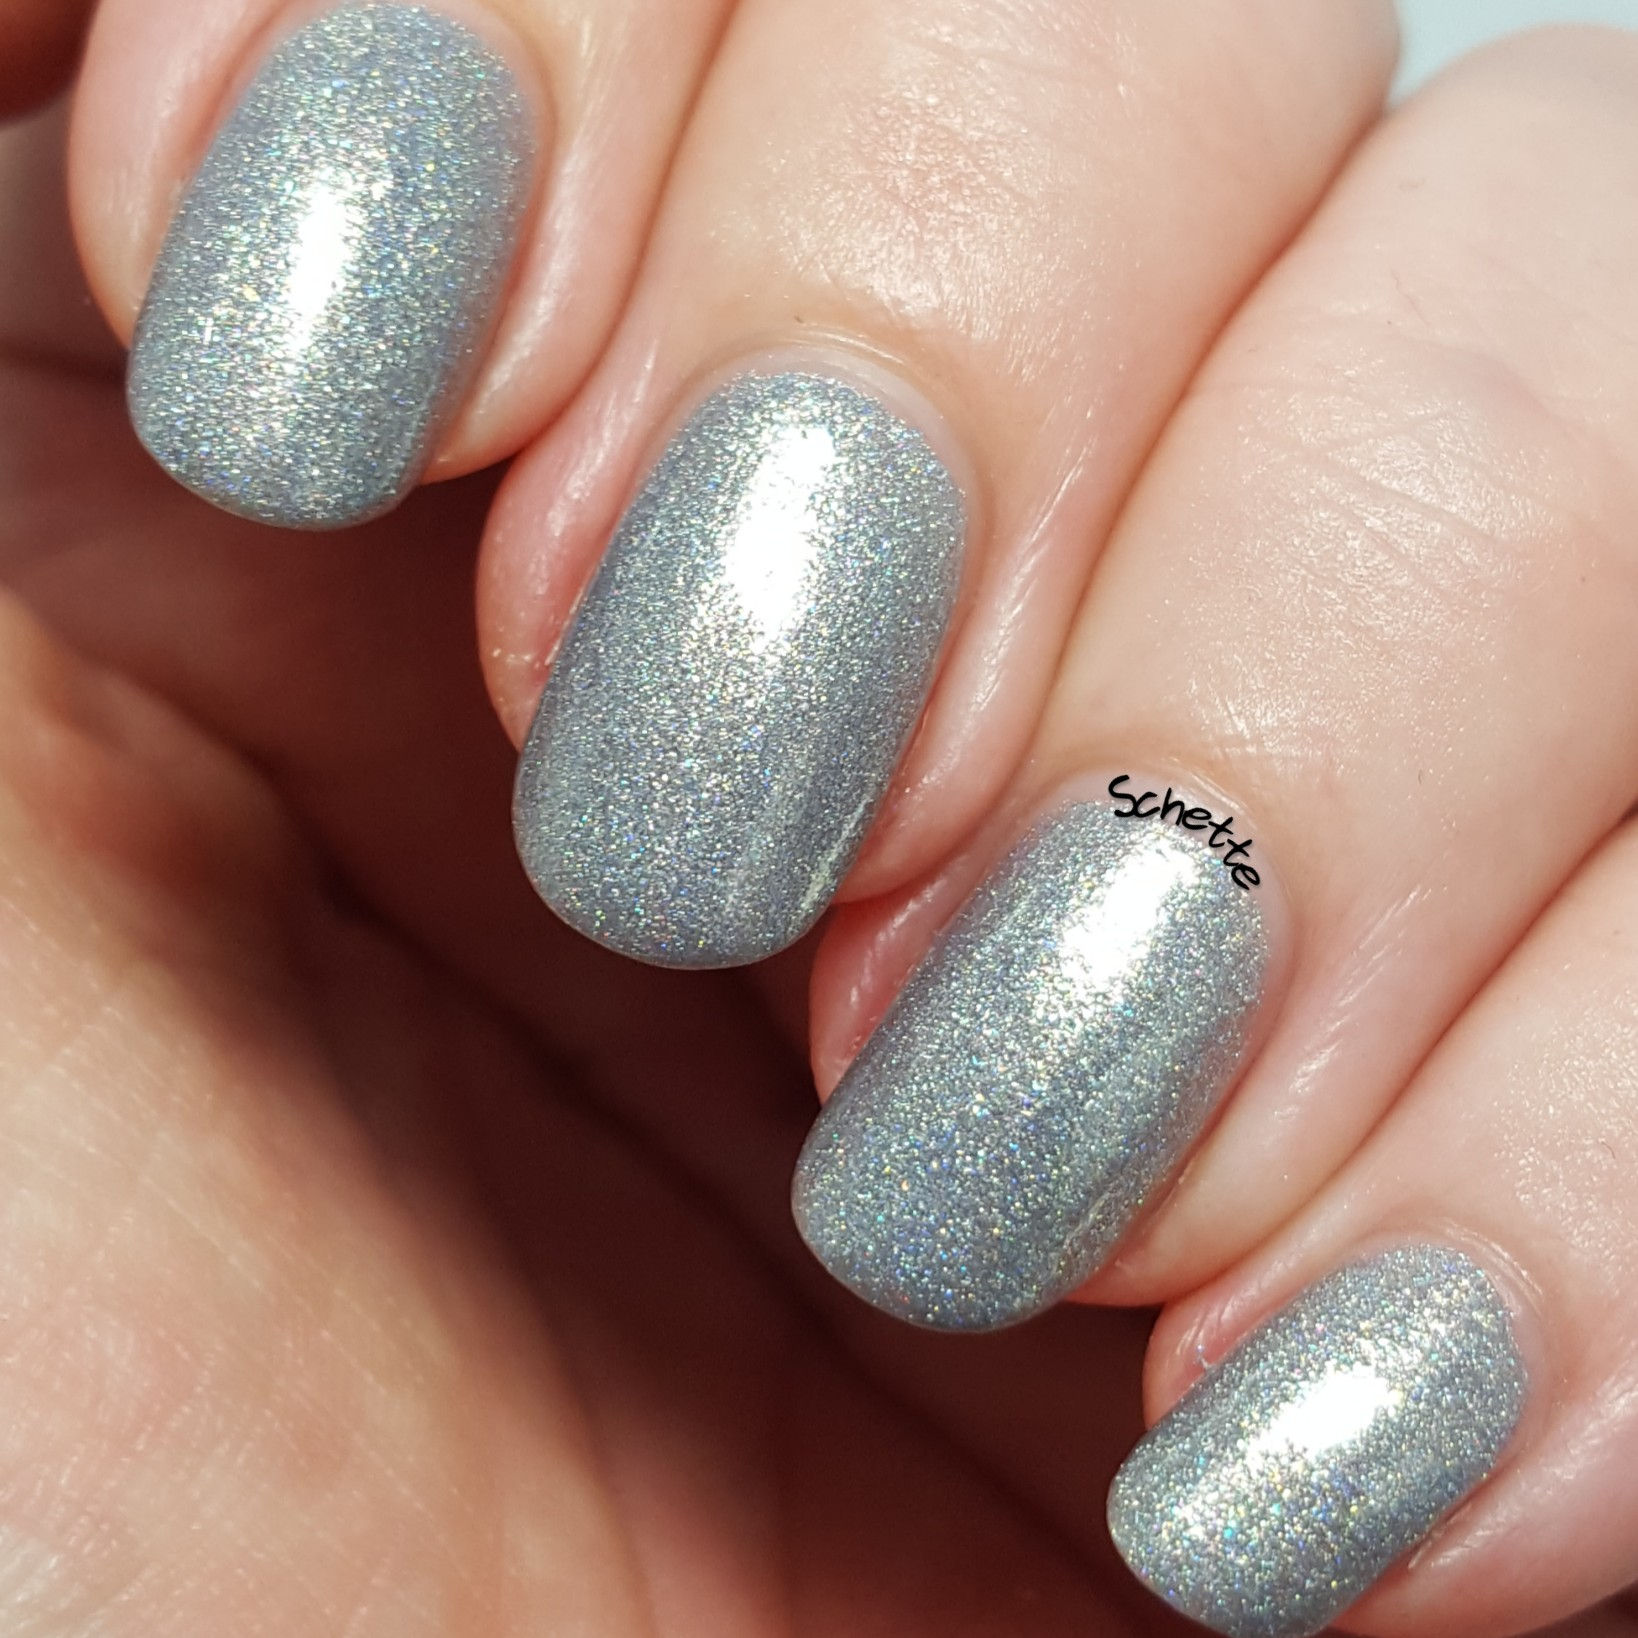 Lilypad Lacquer - Tomcat Tales